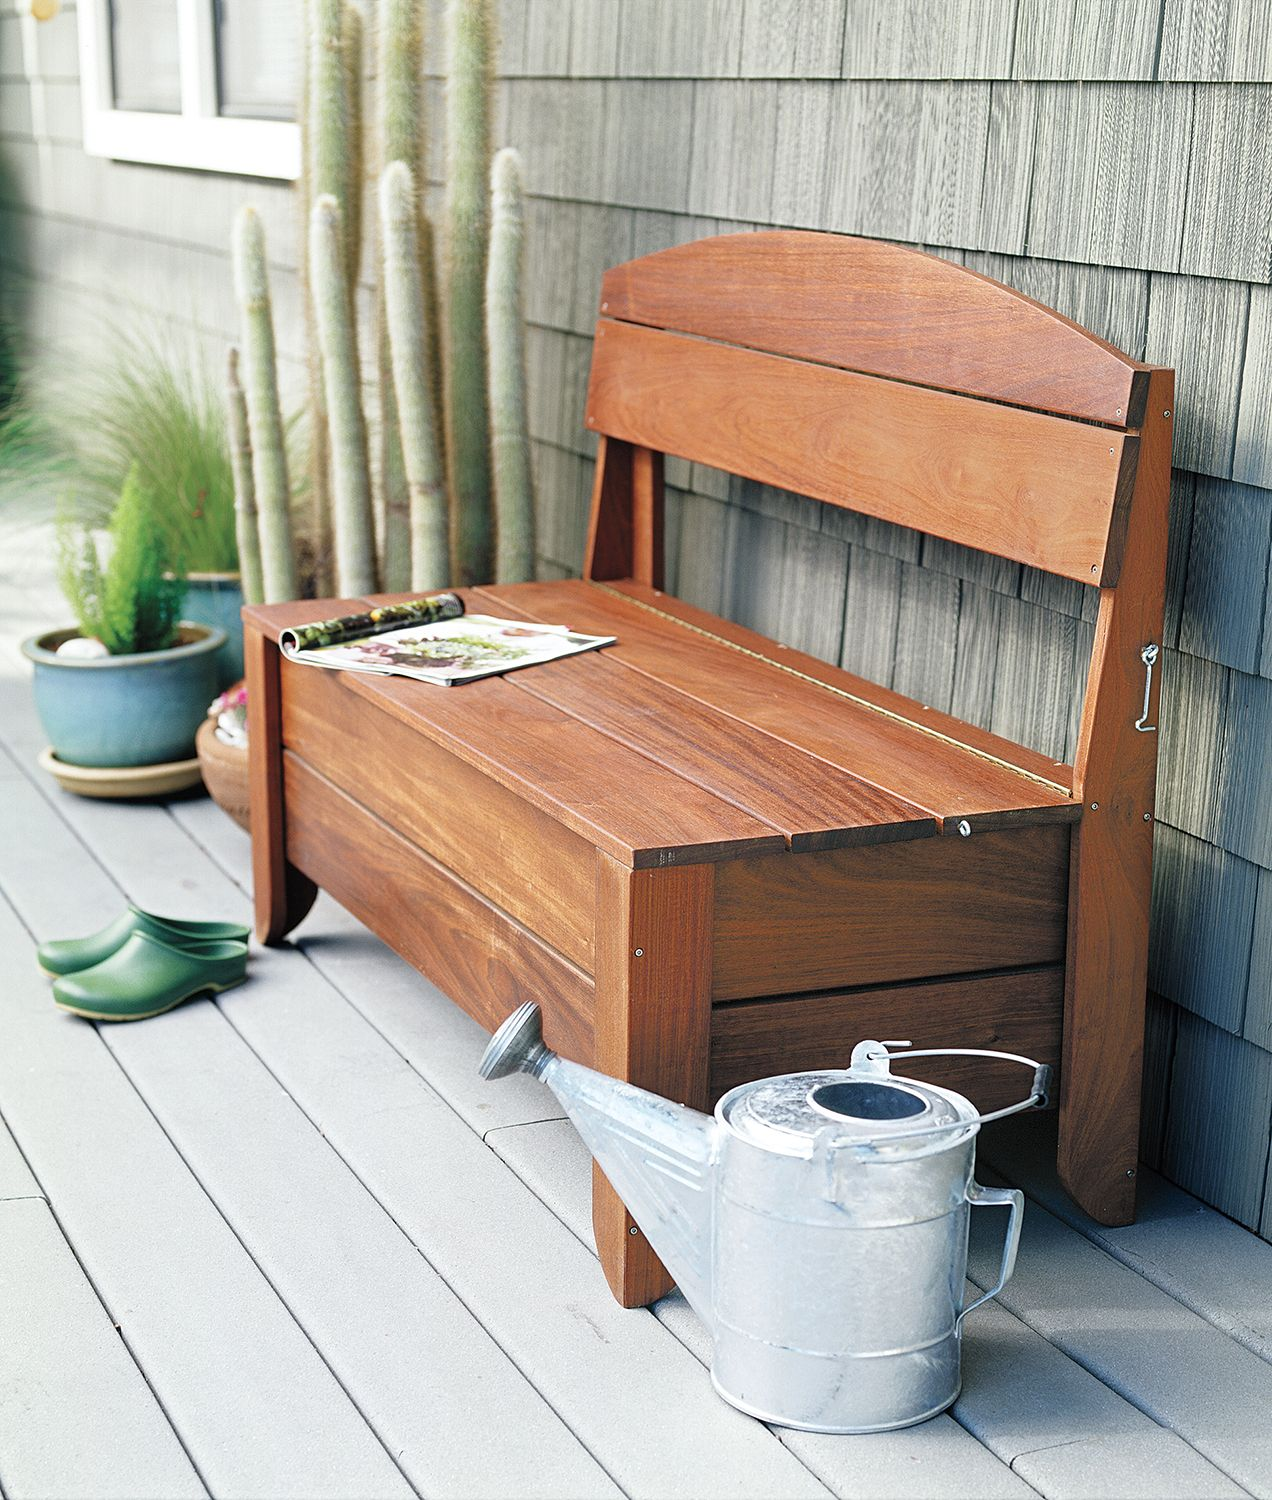 How to Build a Bench With Hidden Storage Outdoor storage